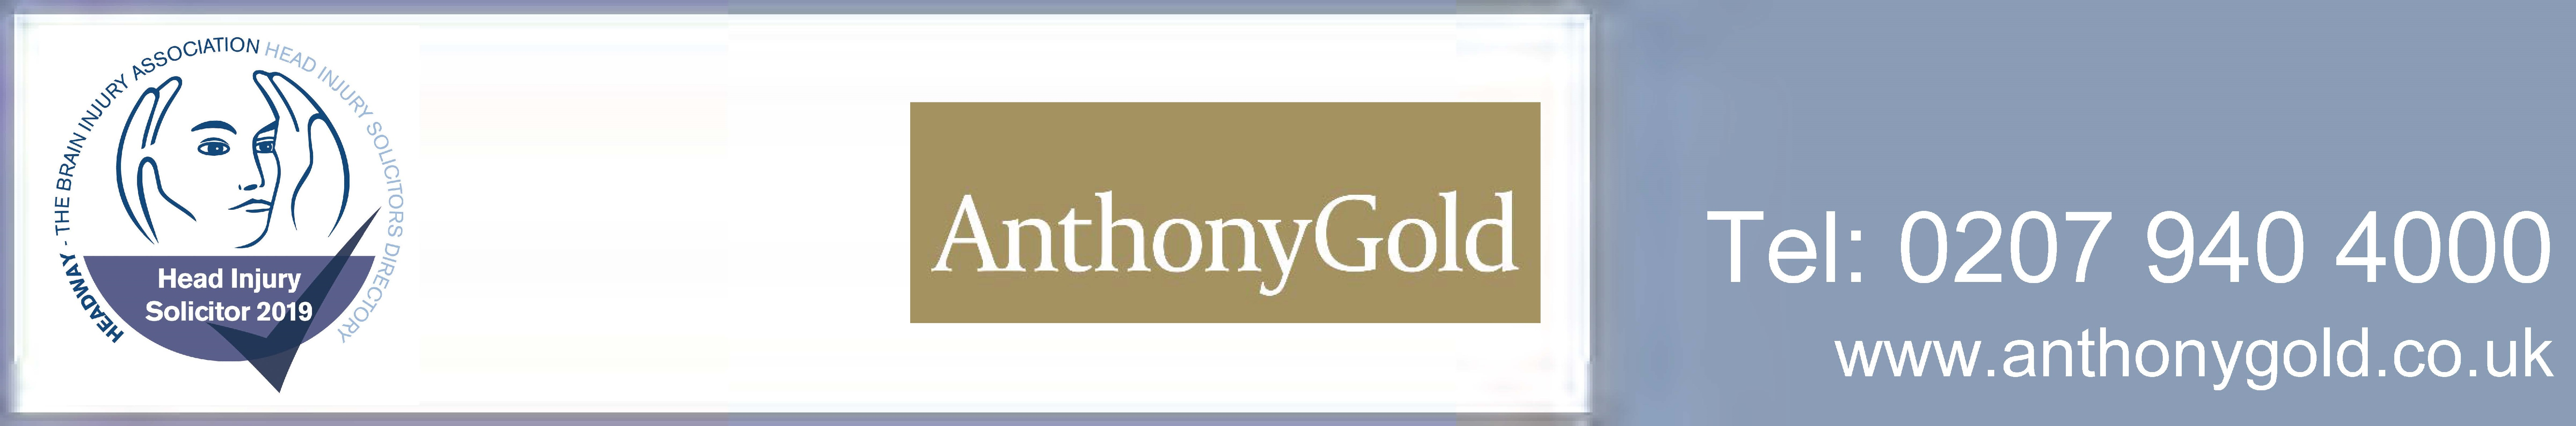 Anthony Gold Banner